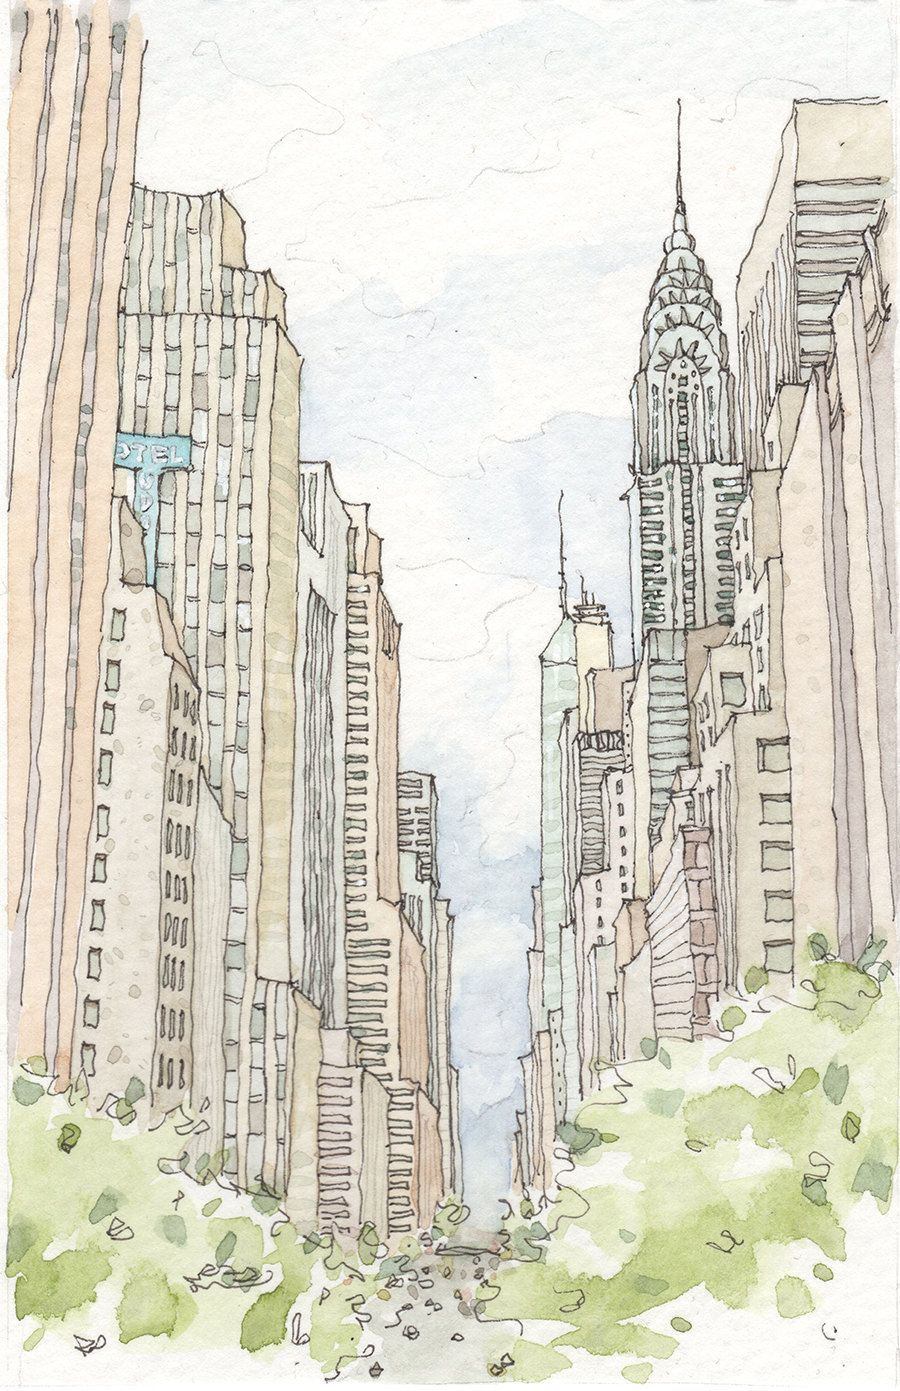 nycinspiration:  sketchdrawingsbyasketchgirl:  New York City Watercolor   www.newyorkinspiration.com